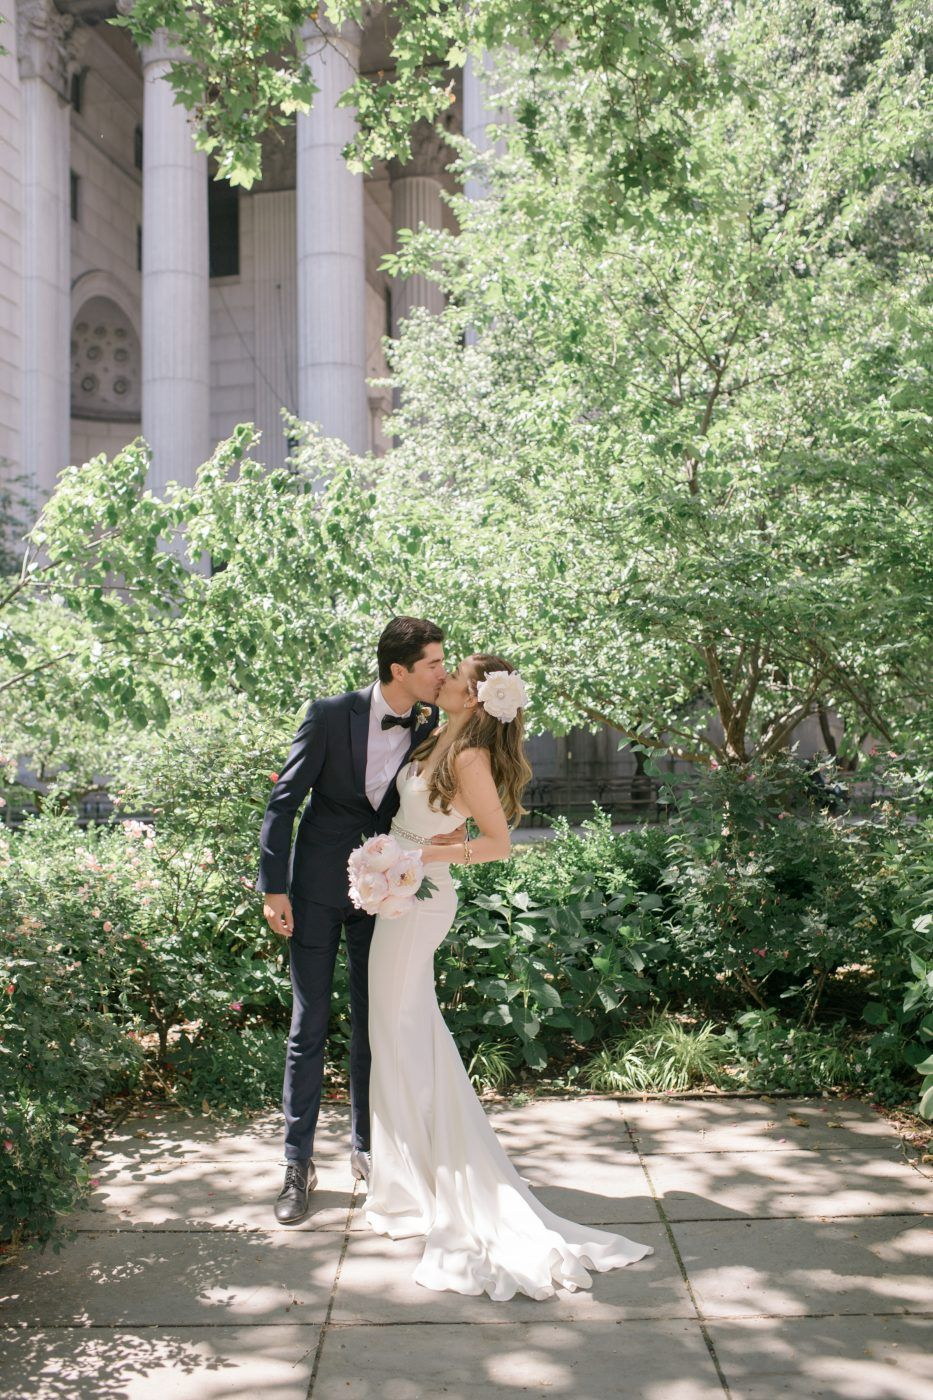 How to prepare for City Hall Weddings in New York (With